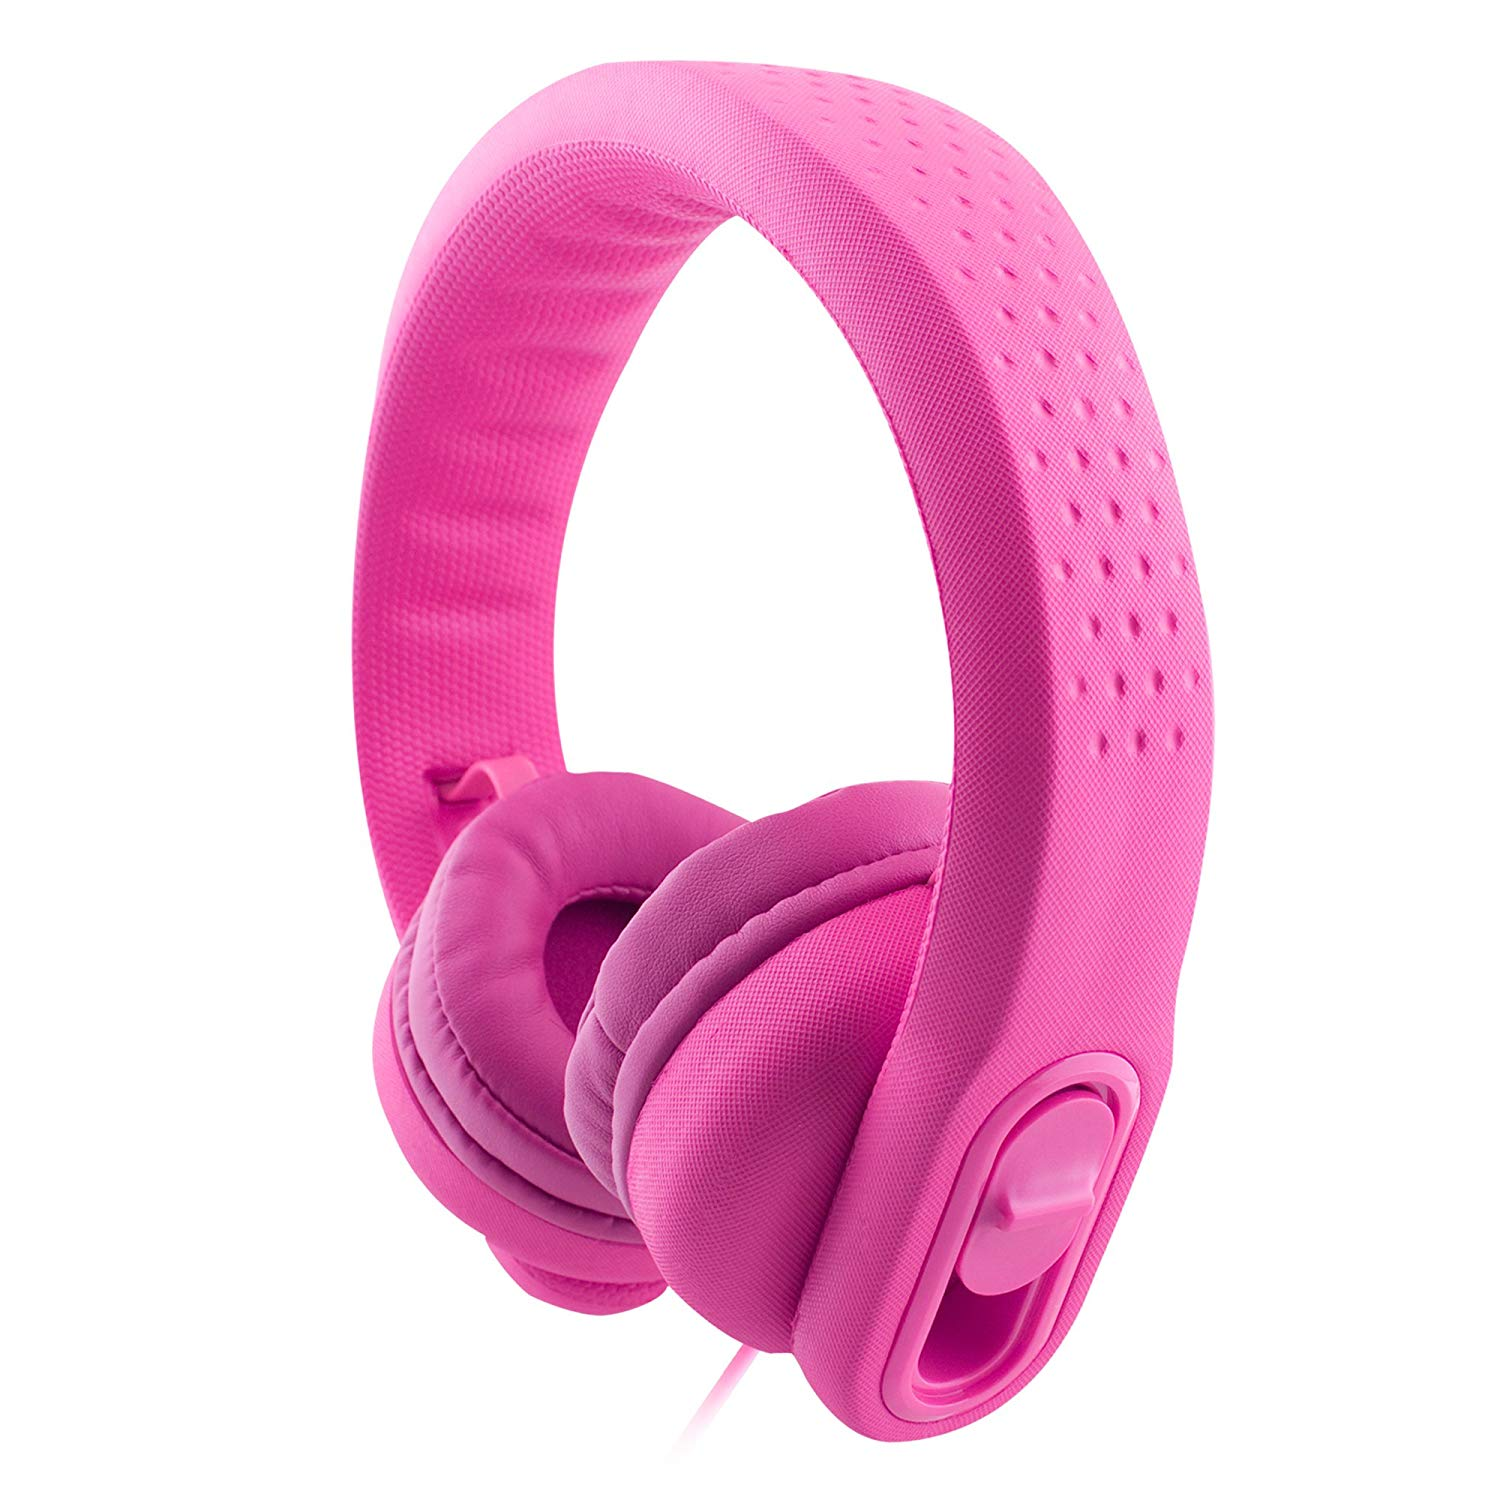 K900 Wired Over Ear Kids Headphones Toddler Headphones with Microphone and Sharing Port, 85dB Volume Limiting, Girls Headphones for Kids,Safe Soft Durable,Boys Child Children Headphones Kids (Pink)